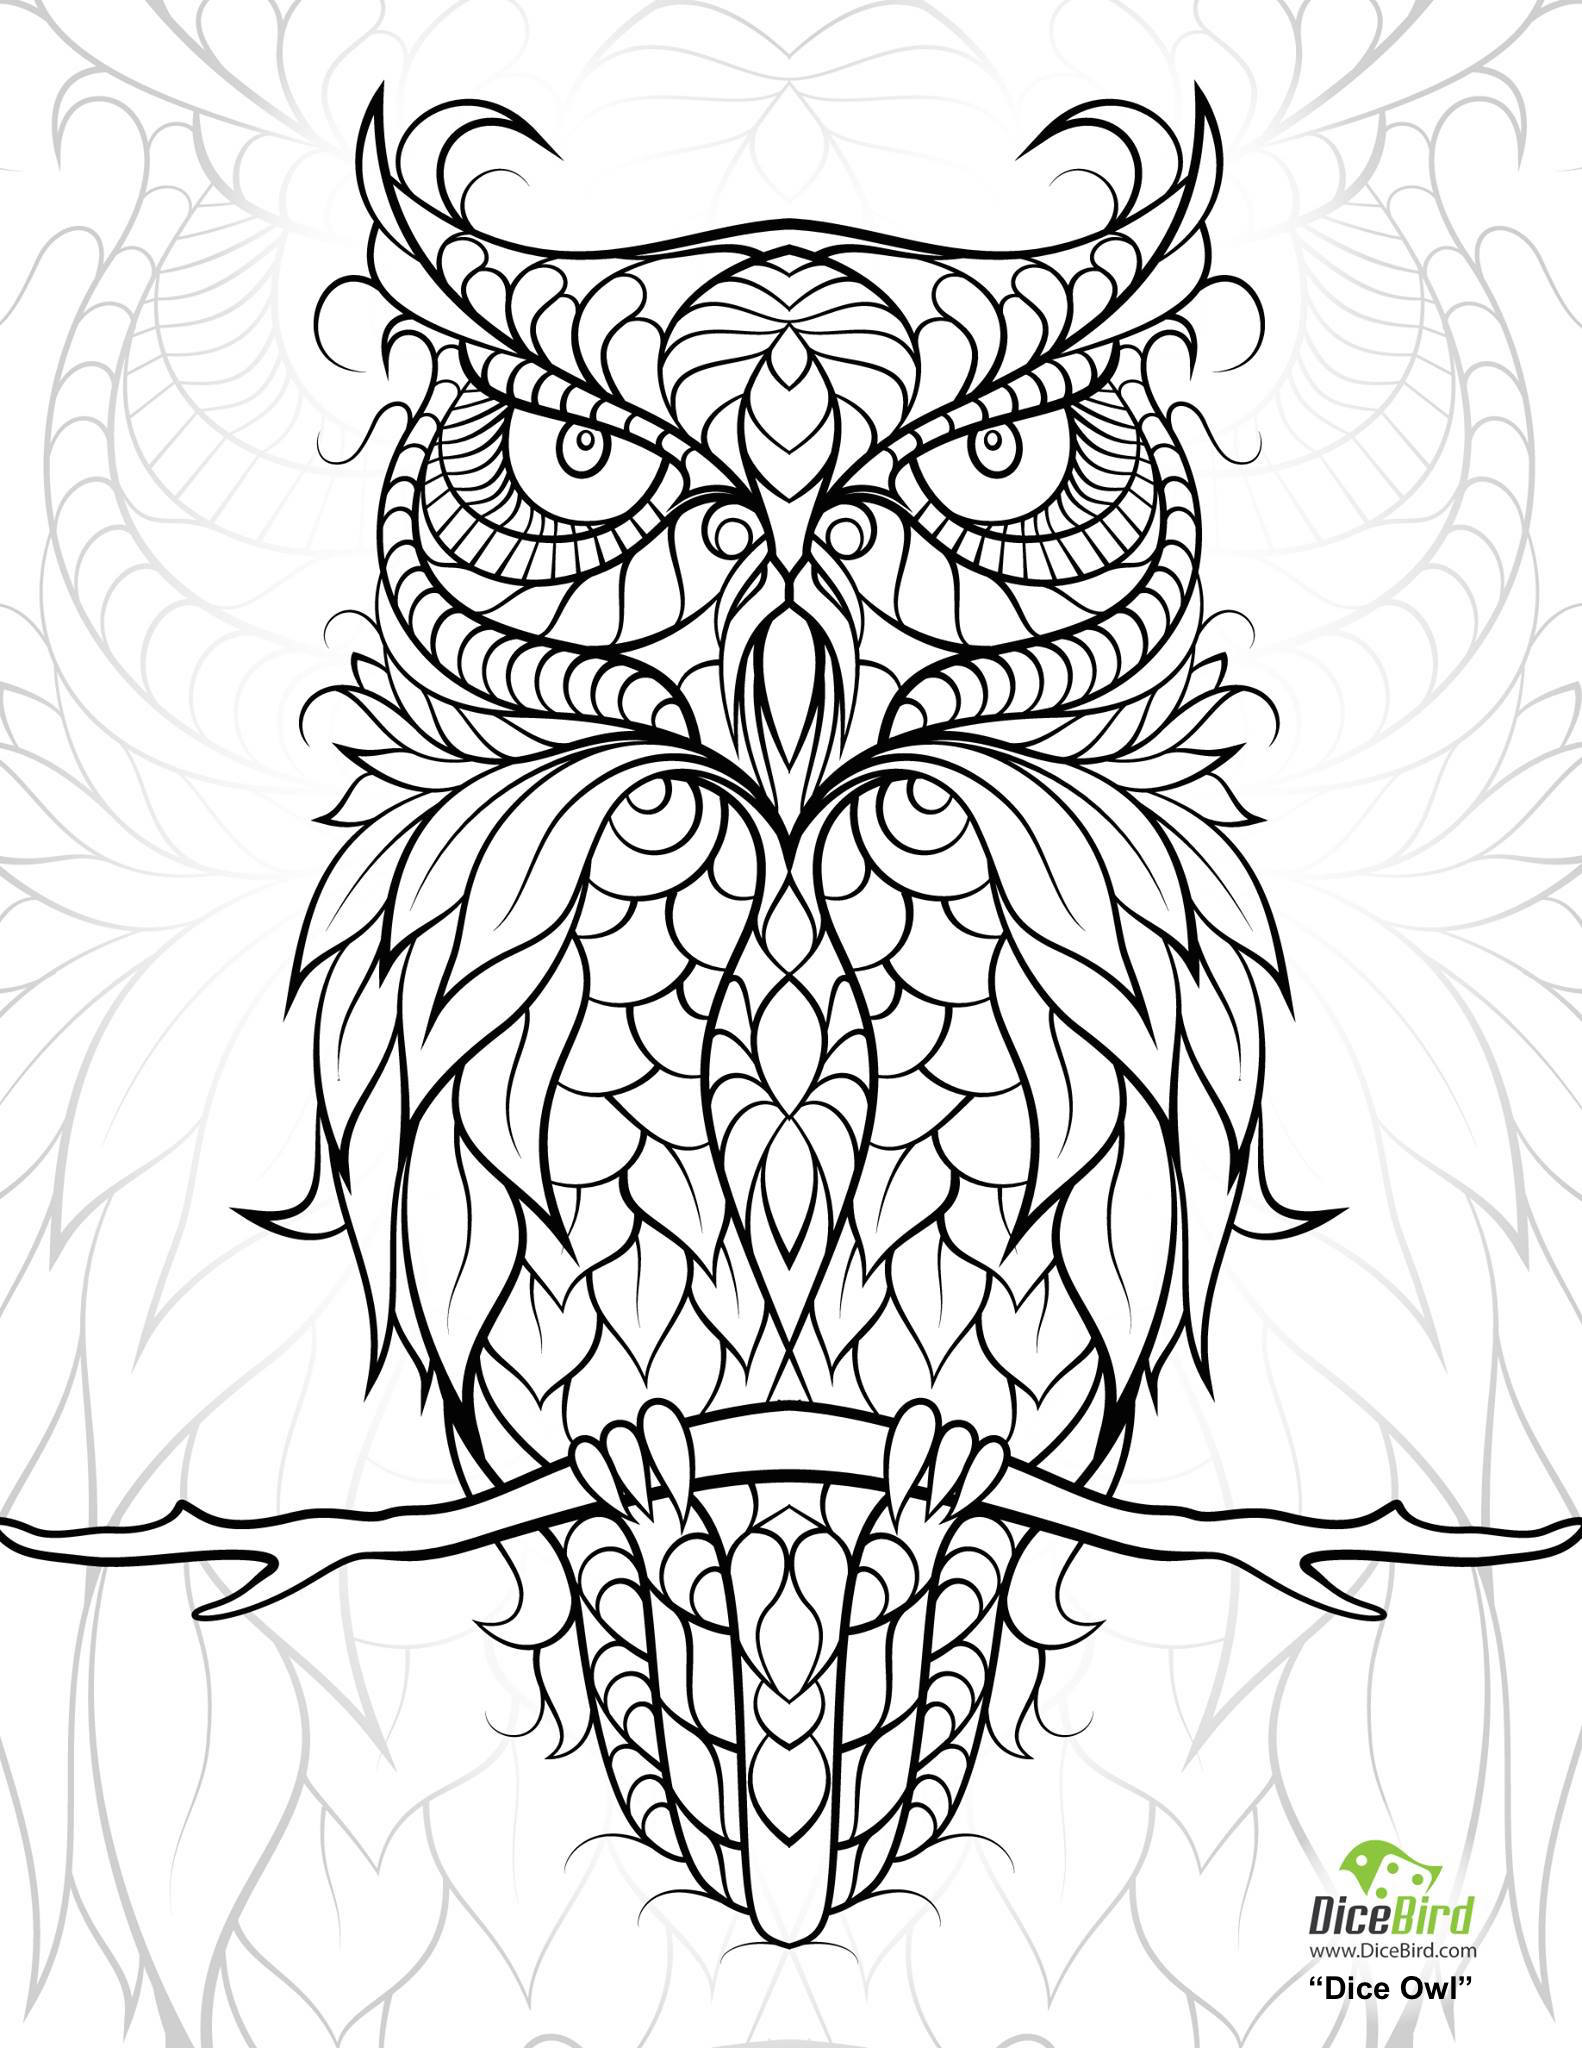 Free coloring pages for adults - Free Coloring Pages For Adults 18